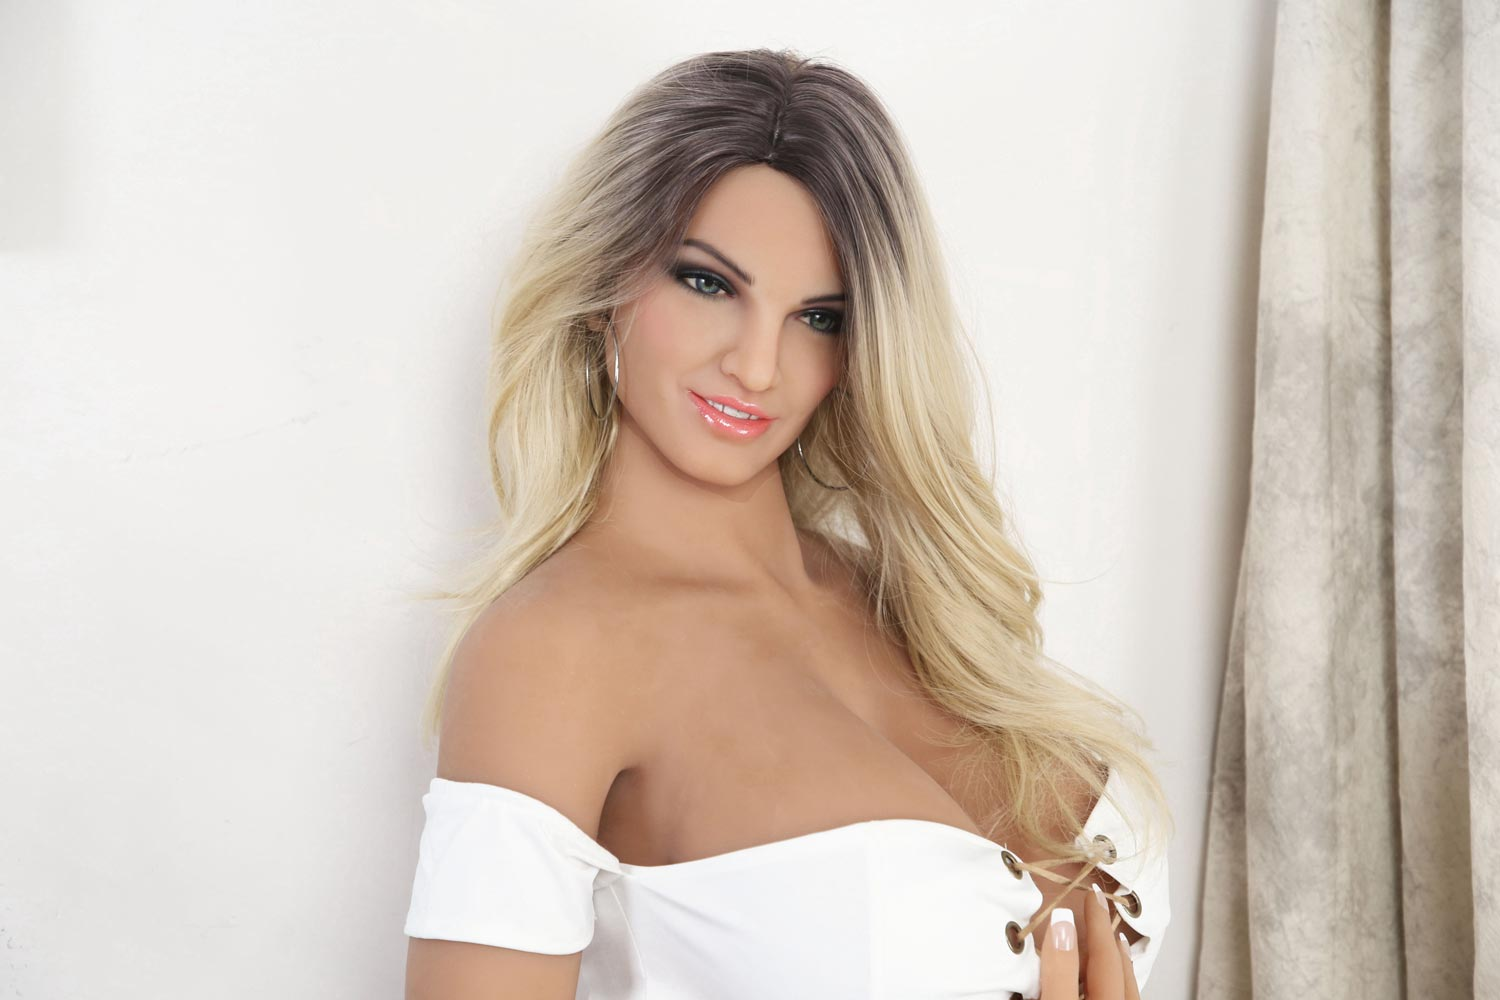 Big breasted sex doll with hands on clothes